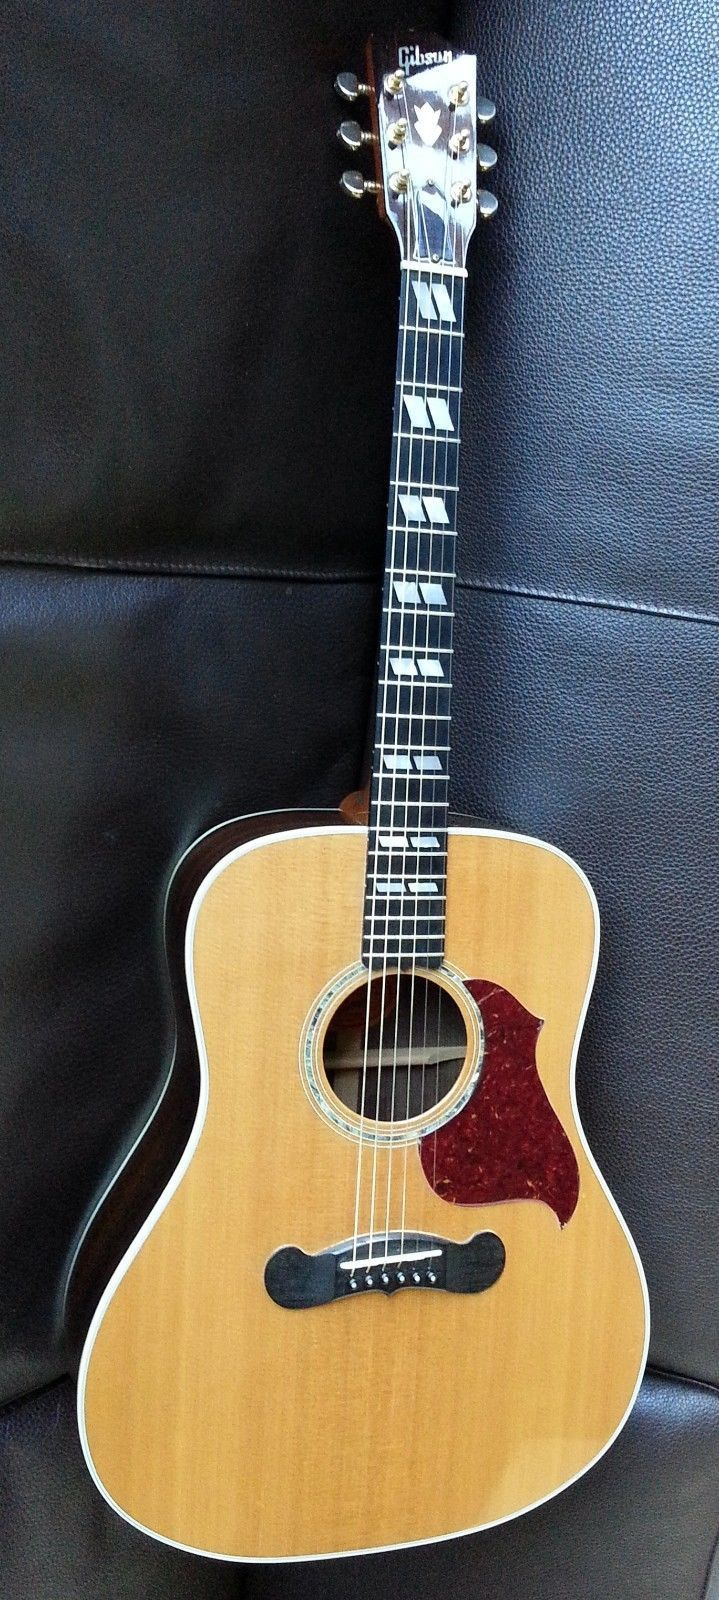 Gibson Songwriter Deluxe Studio Acoustic Electric Guitar | NO RESERVE